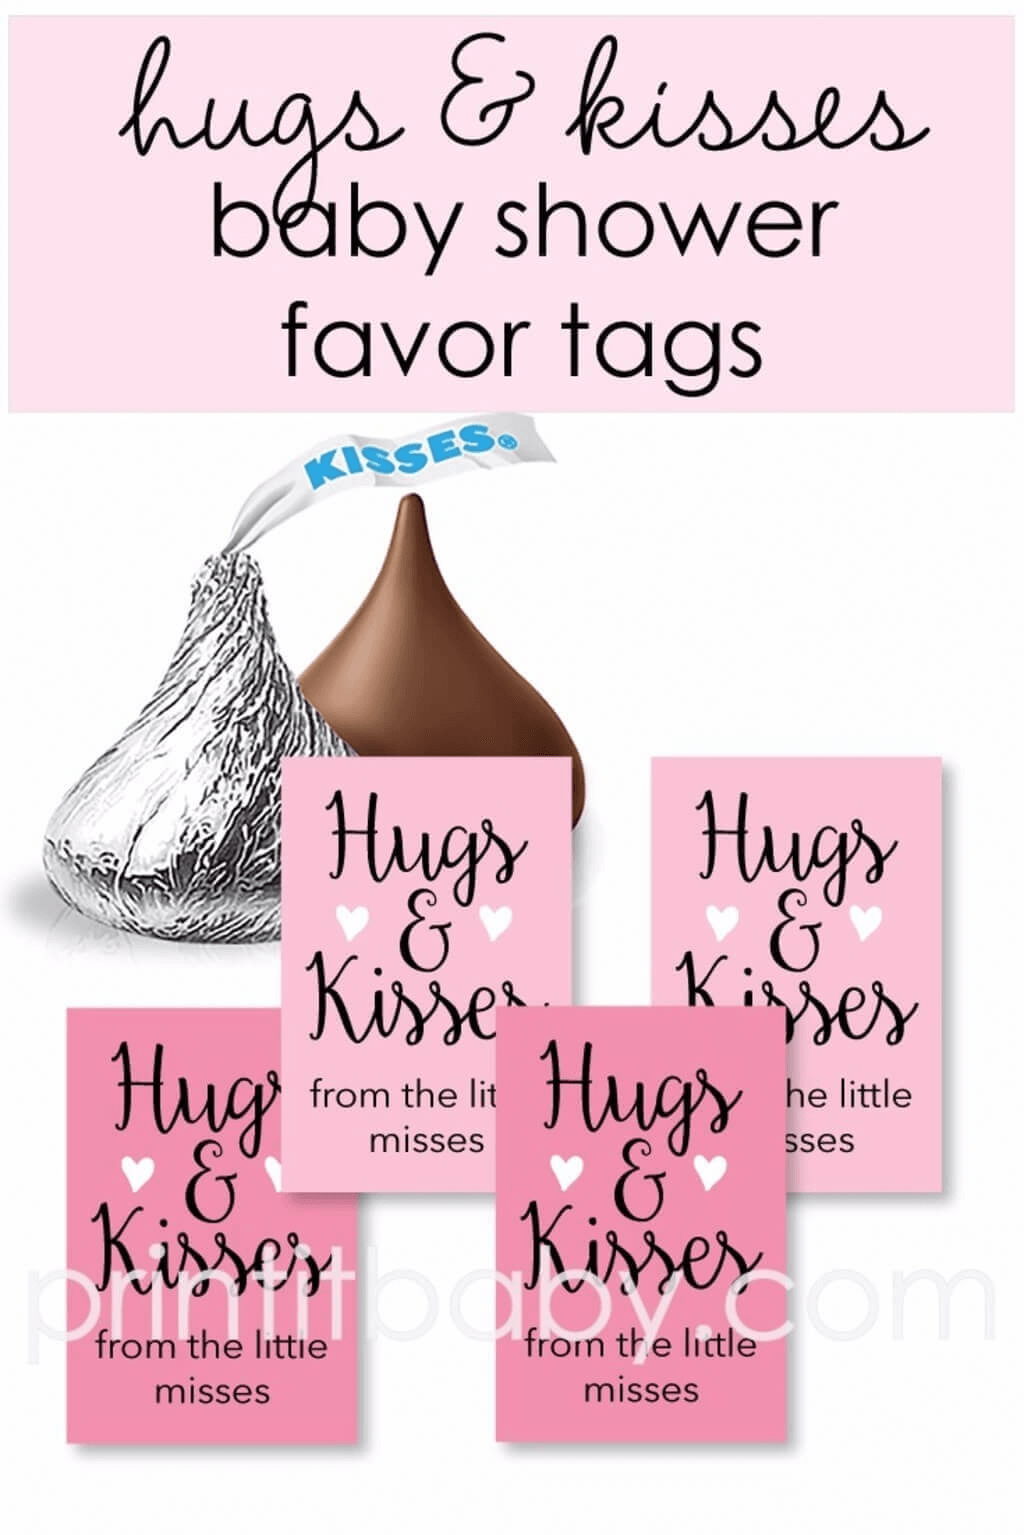 Free Printable Baby Shower Favor Tags For Girls   Baby Shower   Baby - Free Printable Baby Shower Favor Tags